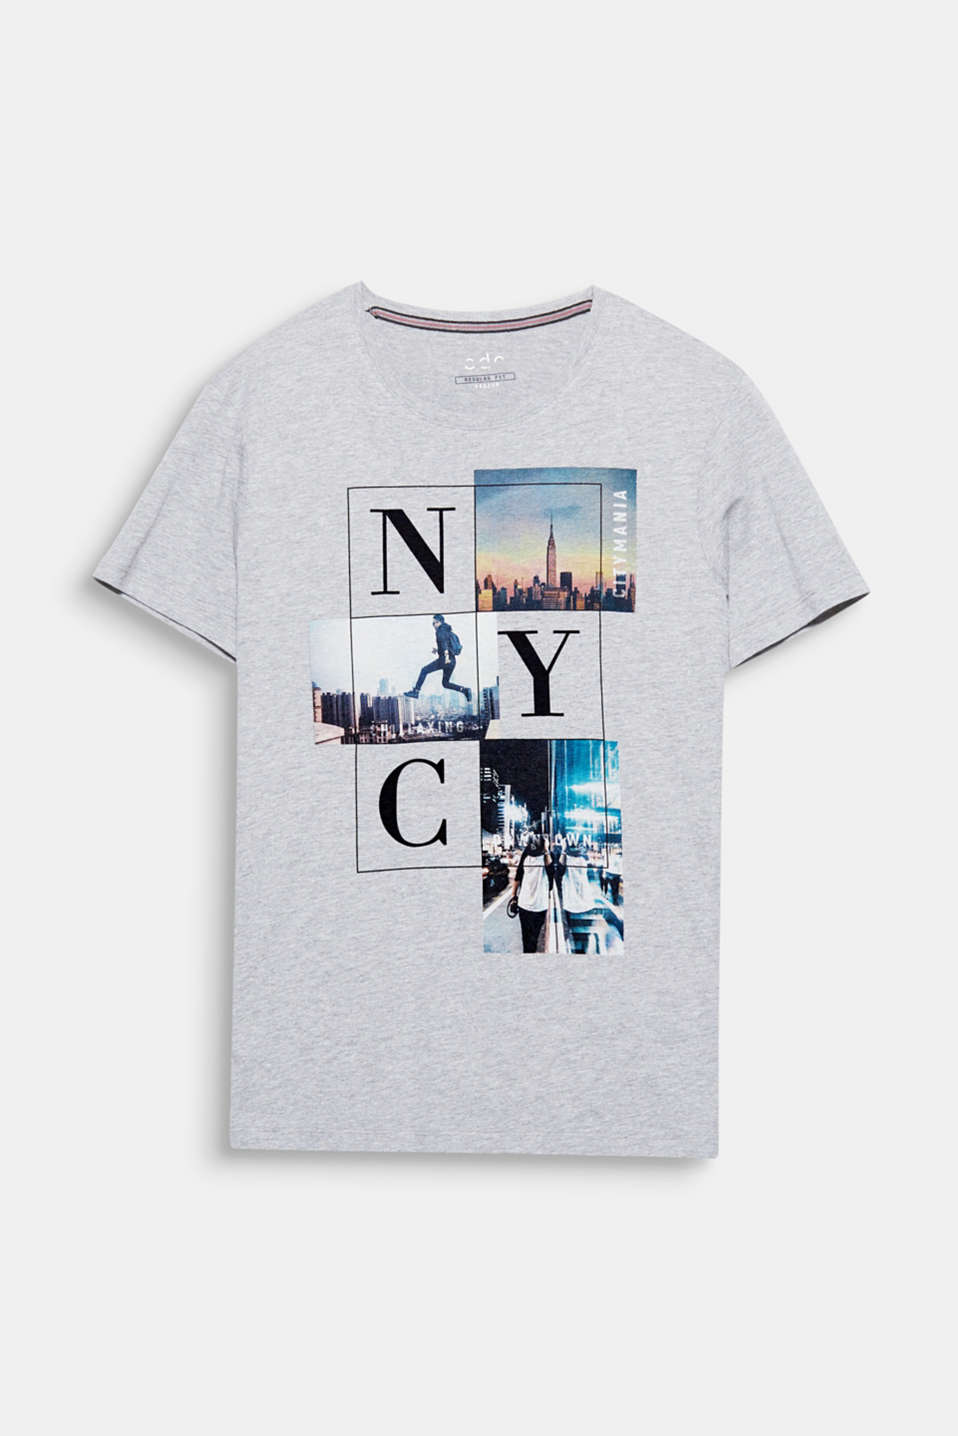 Empire State of Mind! The cool New York photo print gives this T-shirt its cosmopolitan flair.